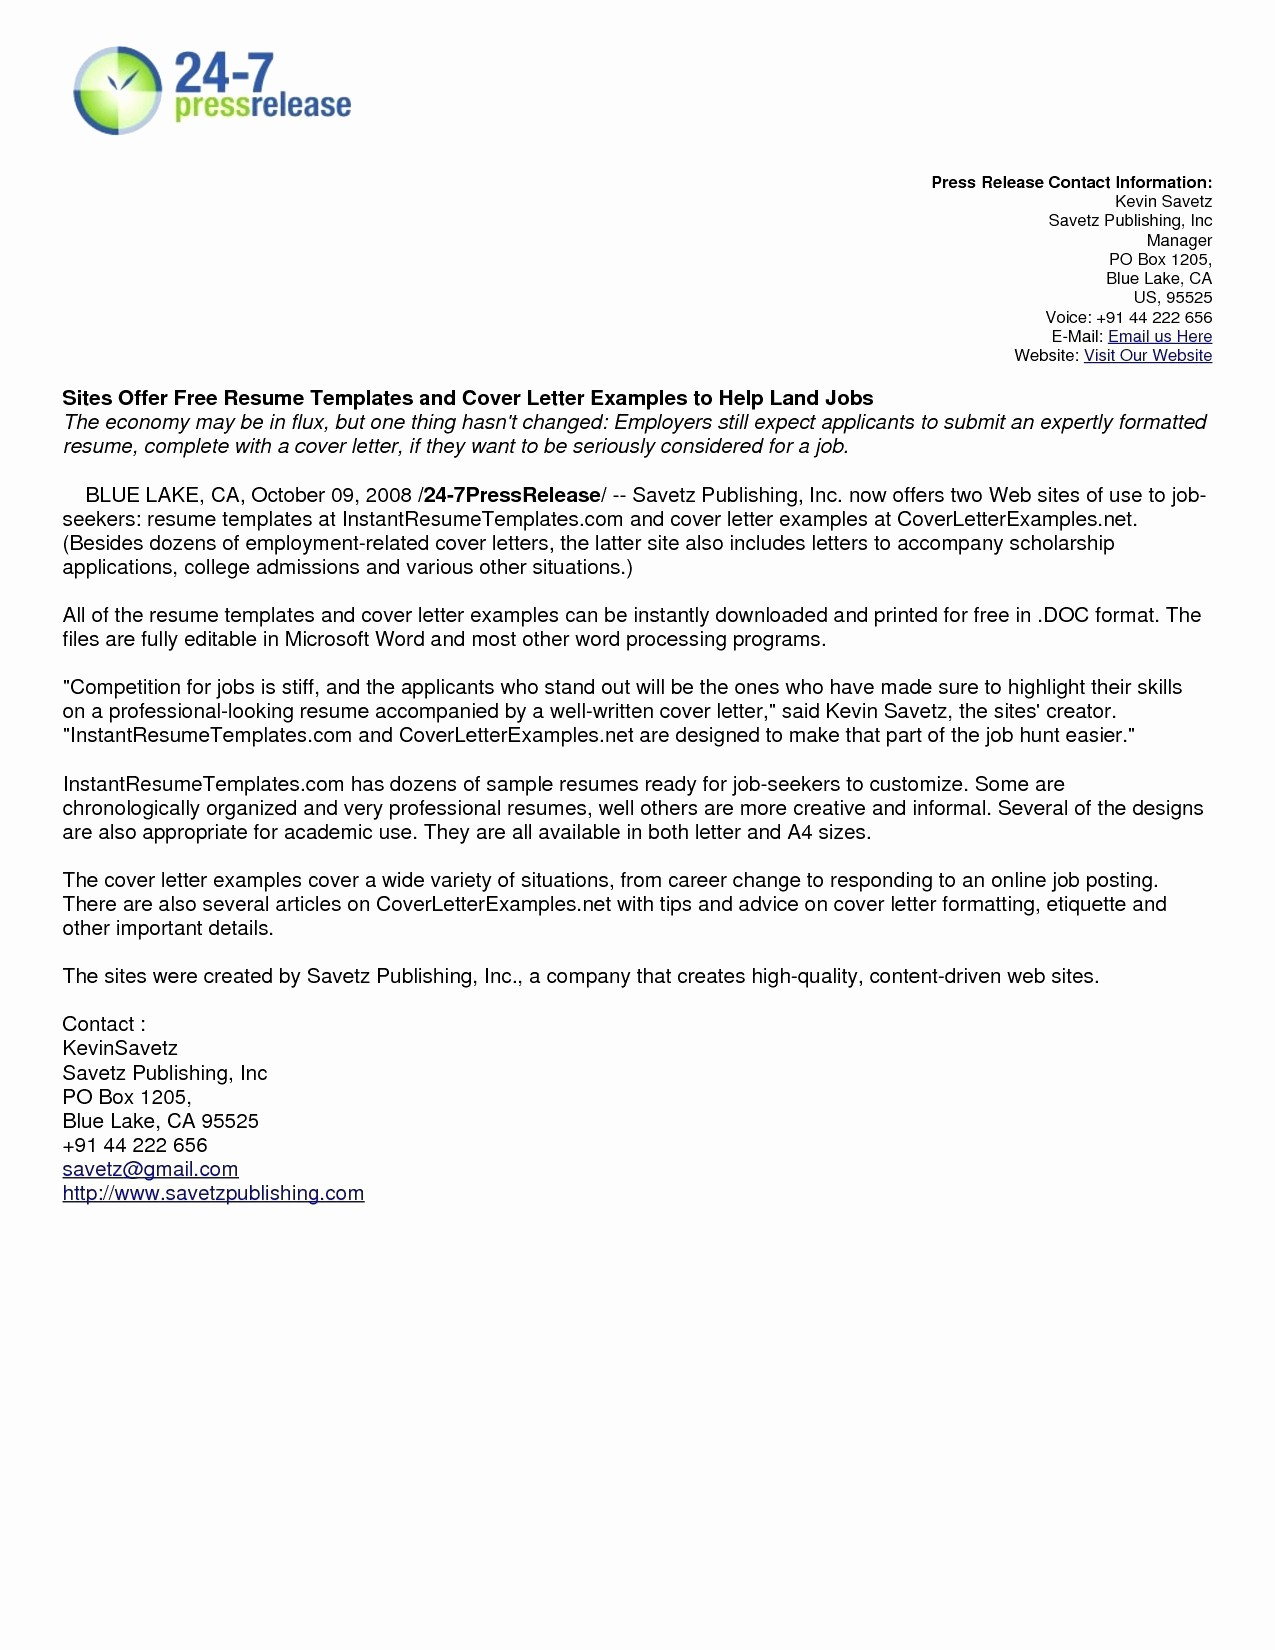 Direct Care Resume - Care assistant Cover Letter Refrence 20 Cover Letter for Direct Care